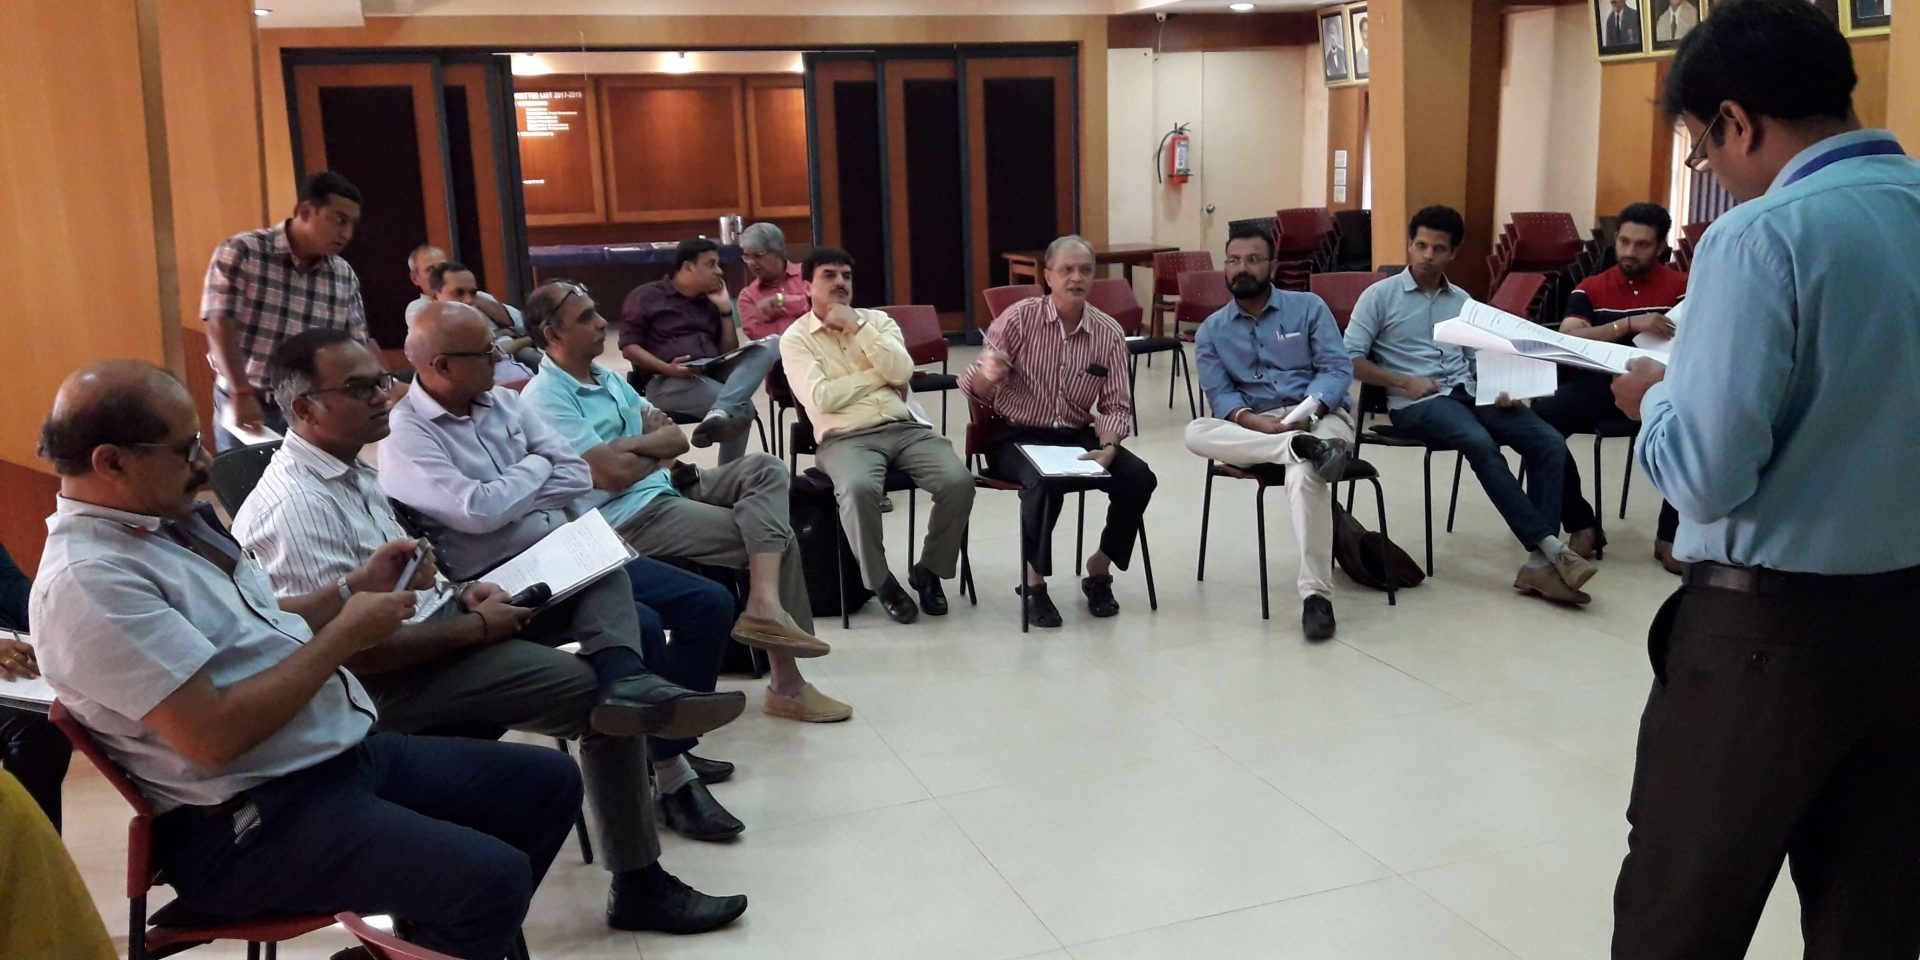 GCCI Trade & Commerce in association with  S.S. Dempo College of Commerce & Economics  on 7th February, 2019 met with Goan Retailers & Traders from various sectors for inputs on formulation of Goa's Retail Policy